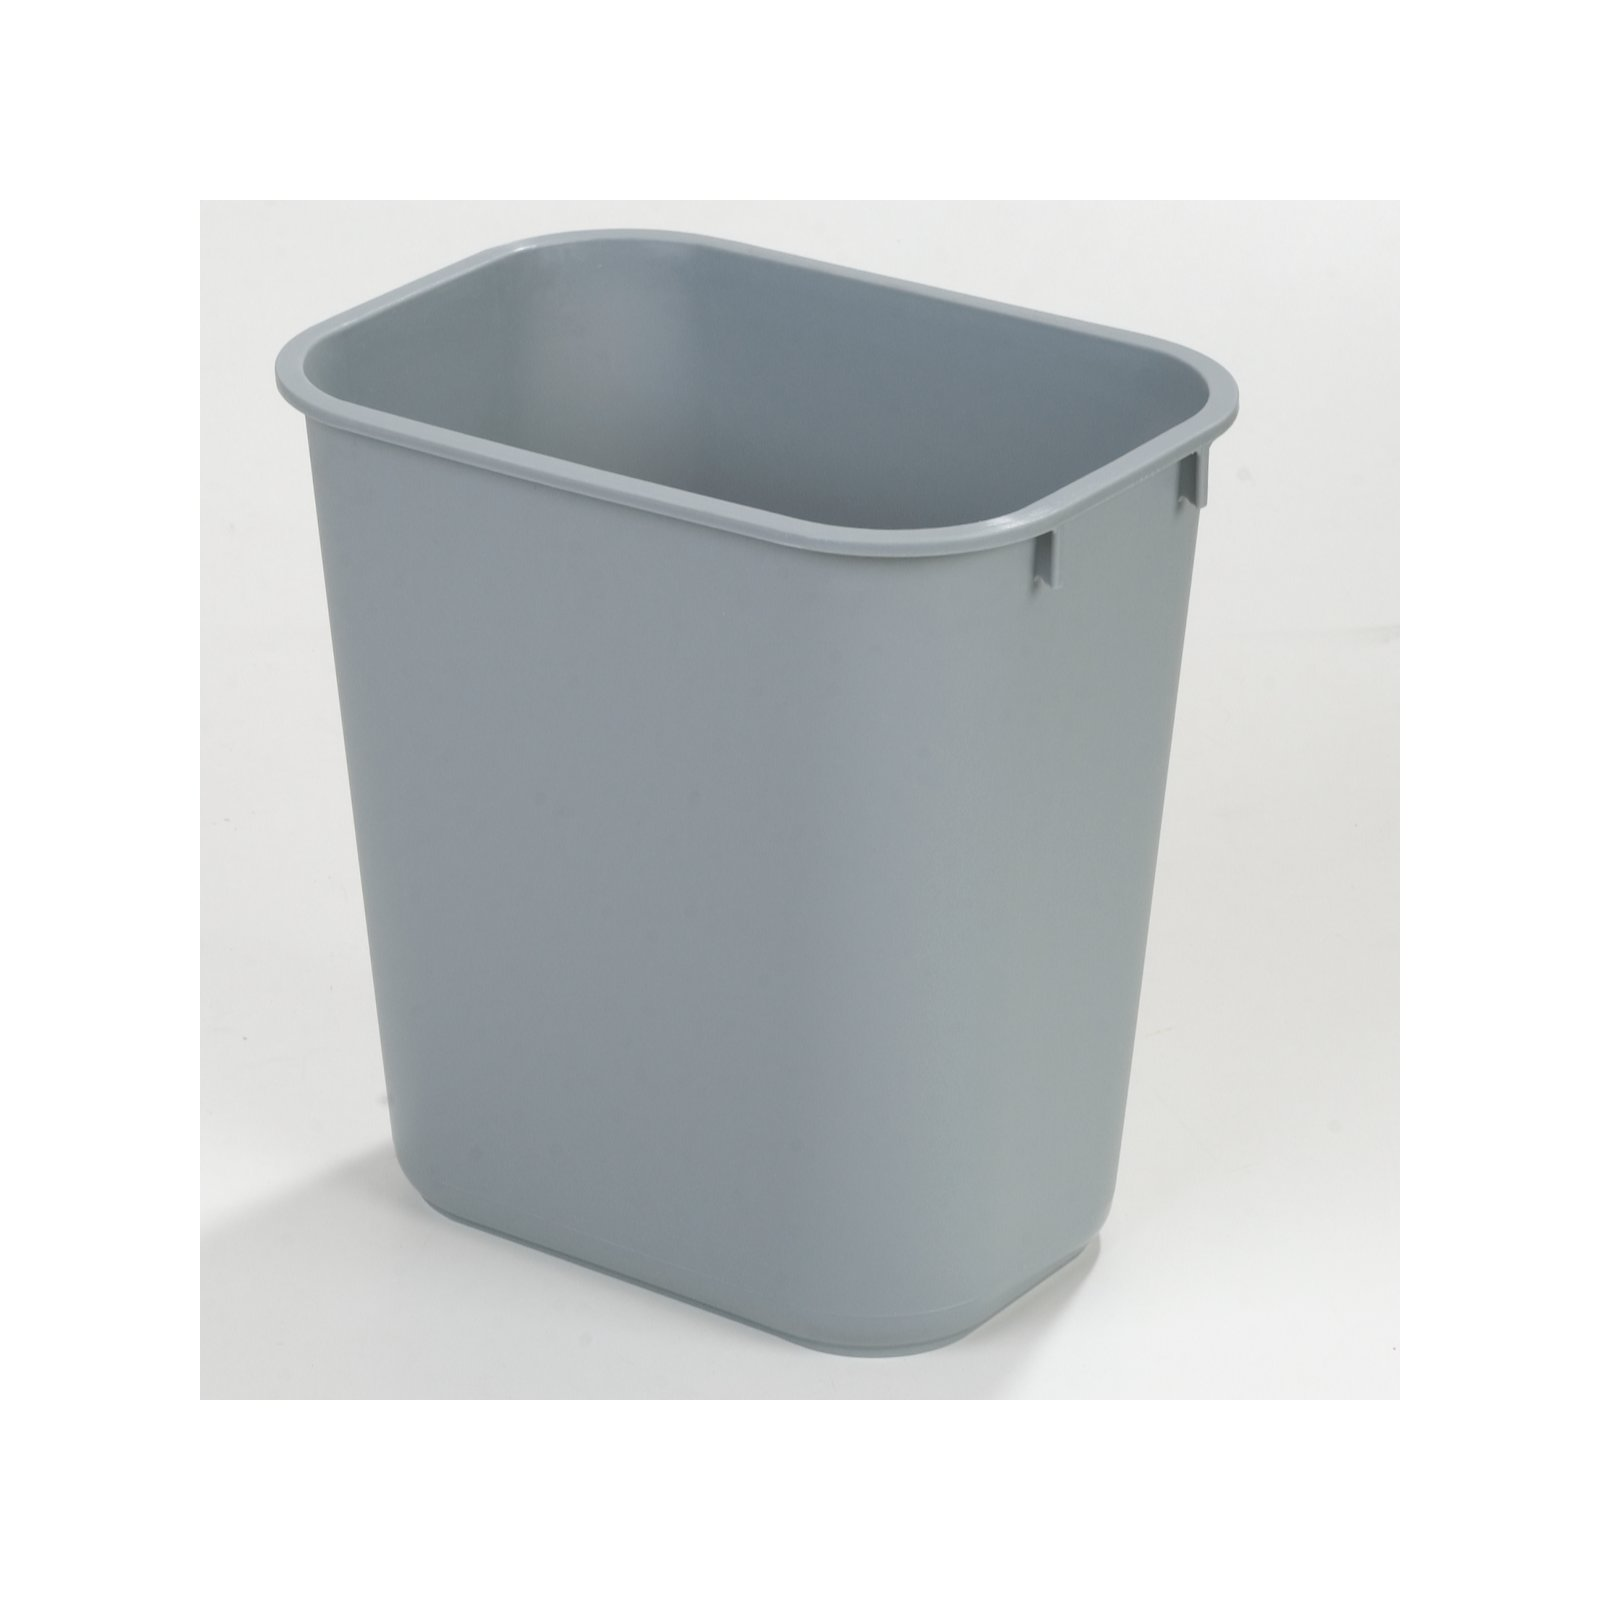 ... 34291323   Small Rectangle Office Wastebasket Trash Can 13 Quart   Gray